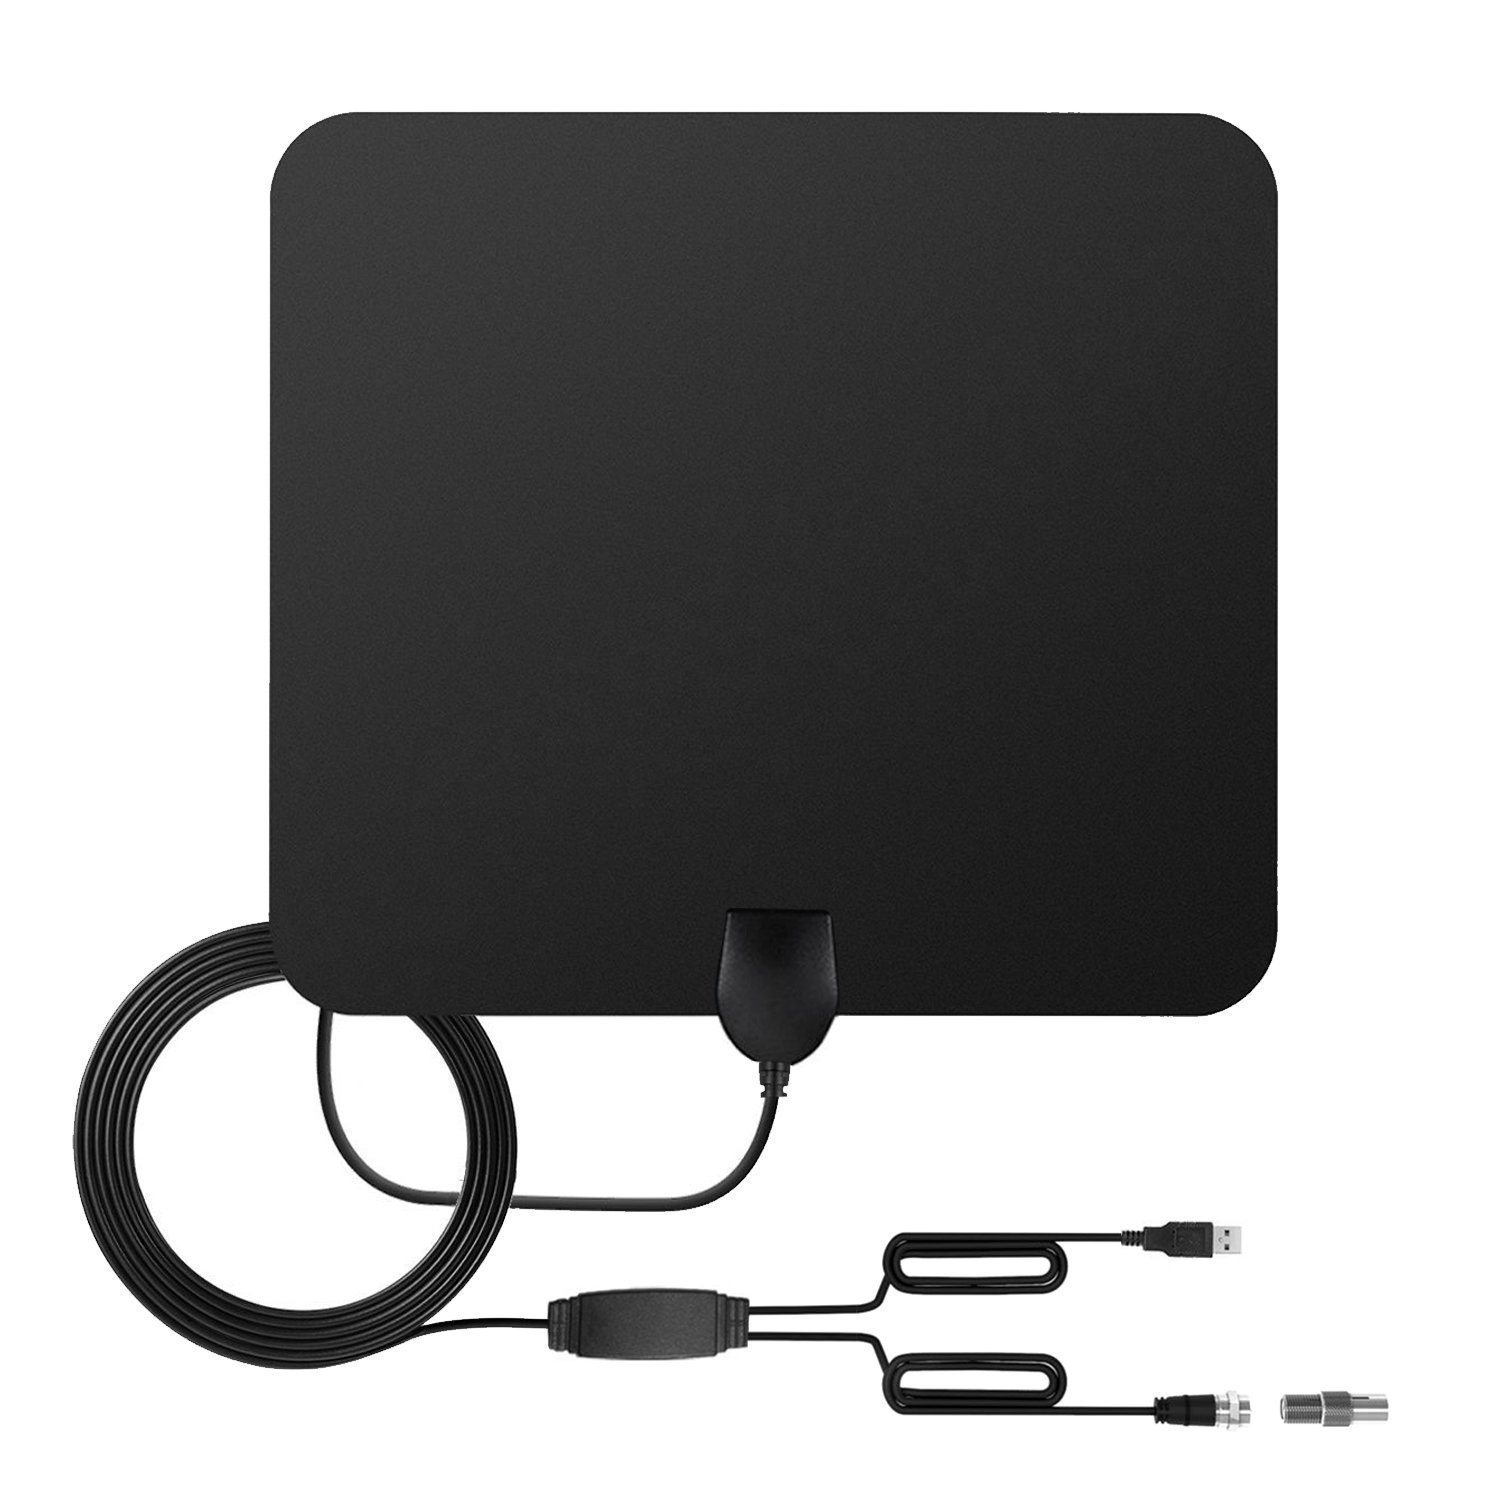 HDTV Antenna, Globmall Indoor Amplified TV Antennas 60 Miles Range Detachable Double Signal Amplifier, Environmental Protection Dual-PC Materials, USB Power Supply 16.5FT Coaxial Cable T-mars